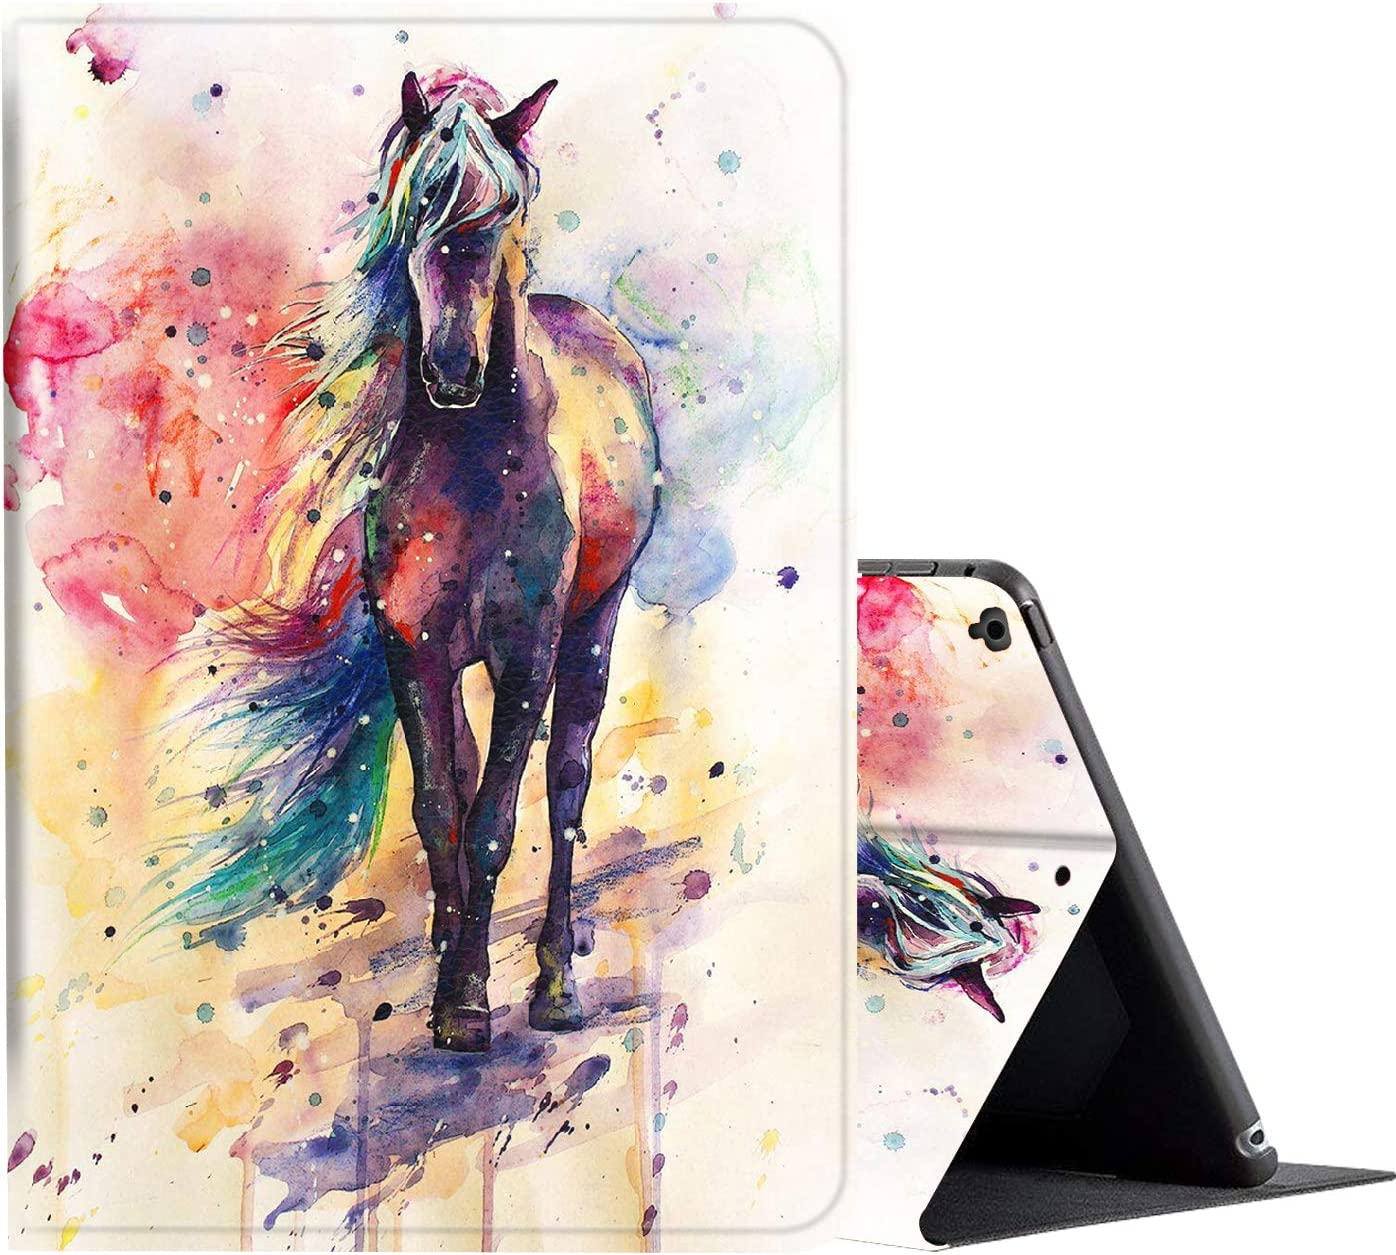 iPad 9.7 Case (2018/2017) 6th/5th Generation ipad Case,Amook Adjustable Non-Slip Folio Stand with Auto Wake/Sleep Smart Cover for Apple iPad 6/5 Gen & ipad air 1/2 9.7 inch-Watercolor Horse clolorful